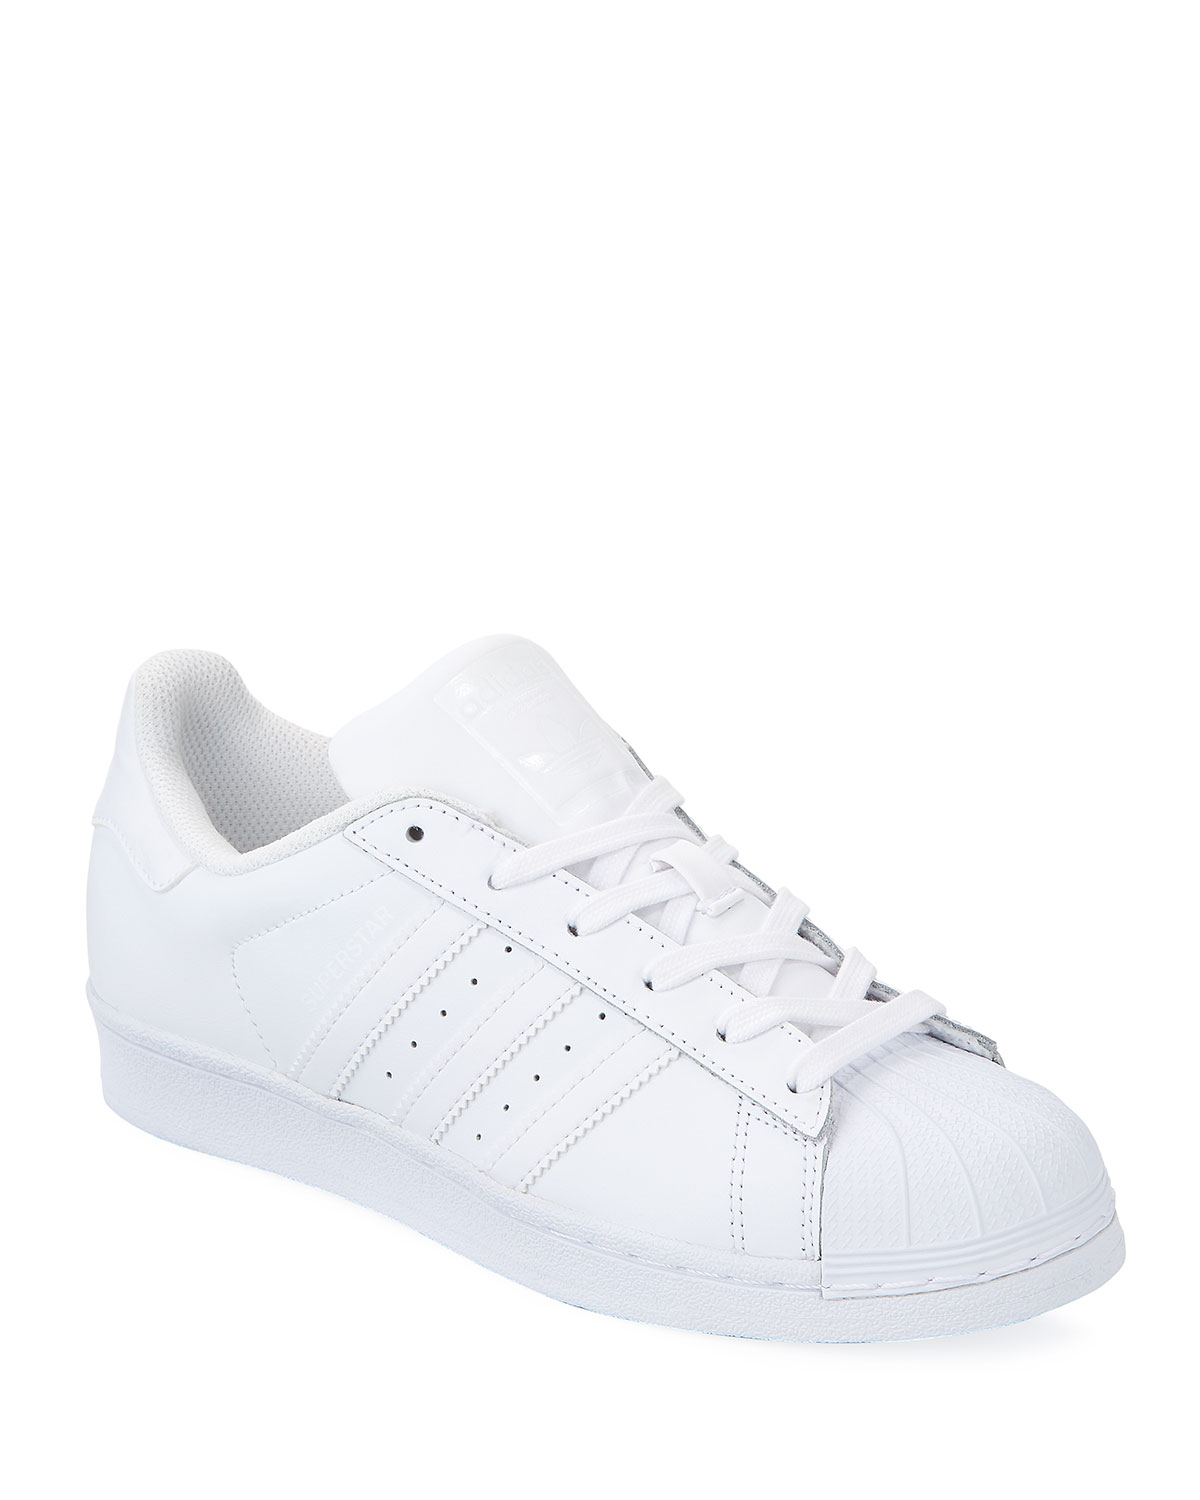 hot sale online 2cf95 00d73 Adidas Superstar Classic Sneakers, White